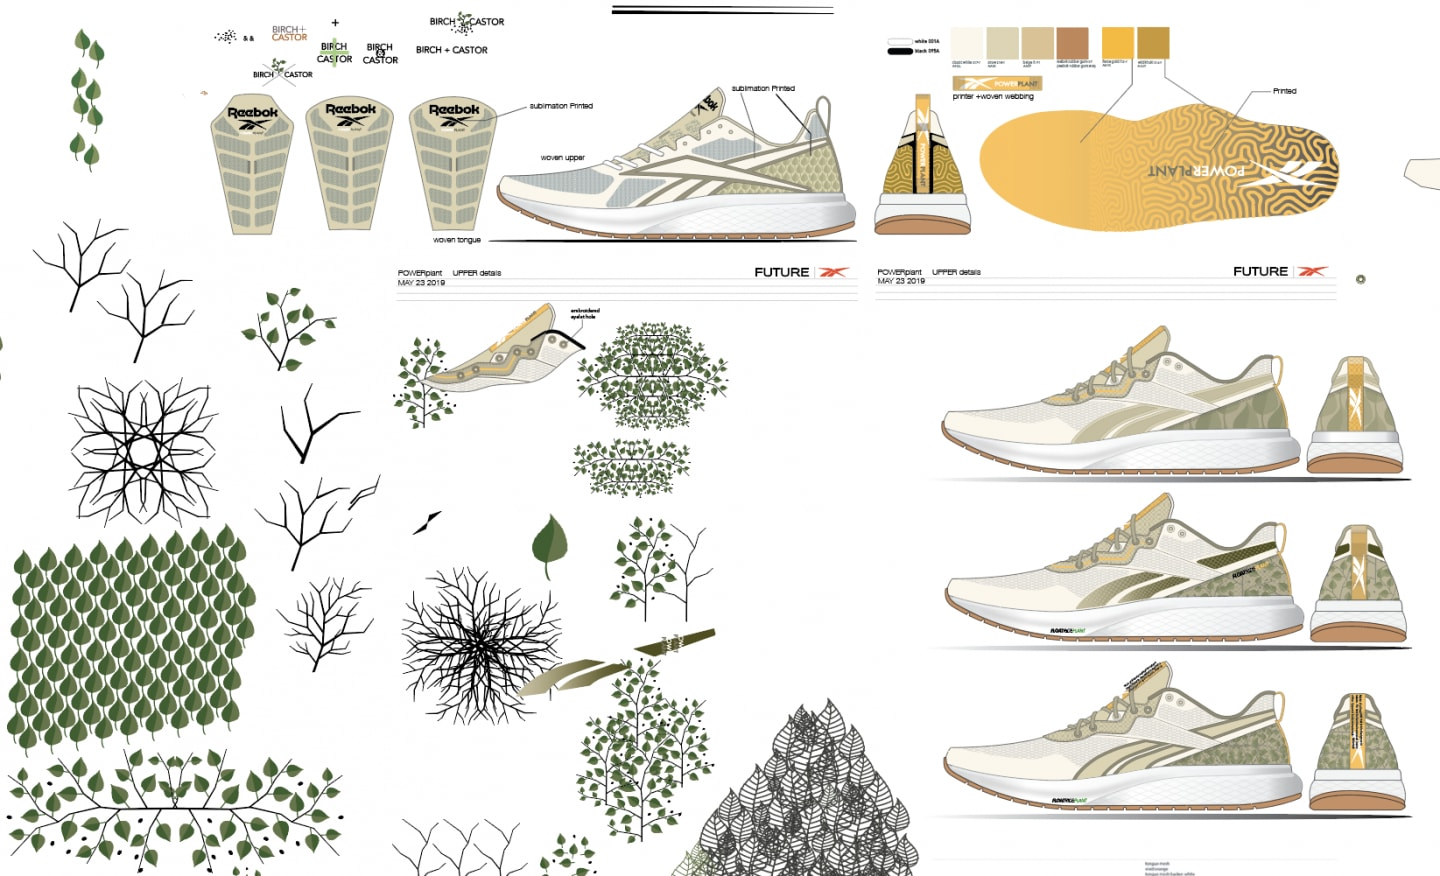 Designer sketches of running shoe with sketches of plants, Reebok, Forever Floatride GROW, innovation, design, Ricardo Vestuti